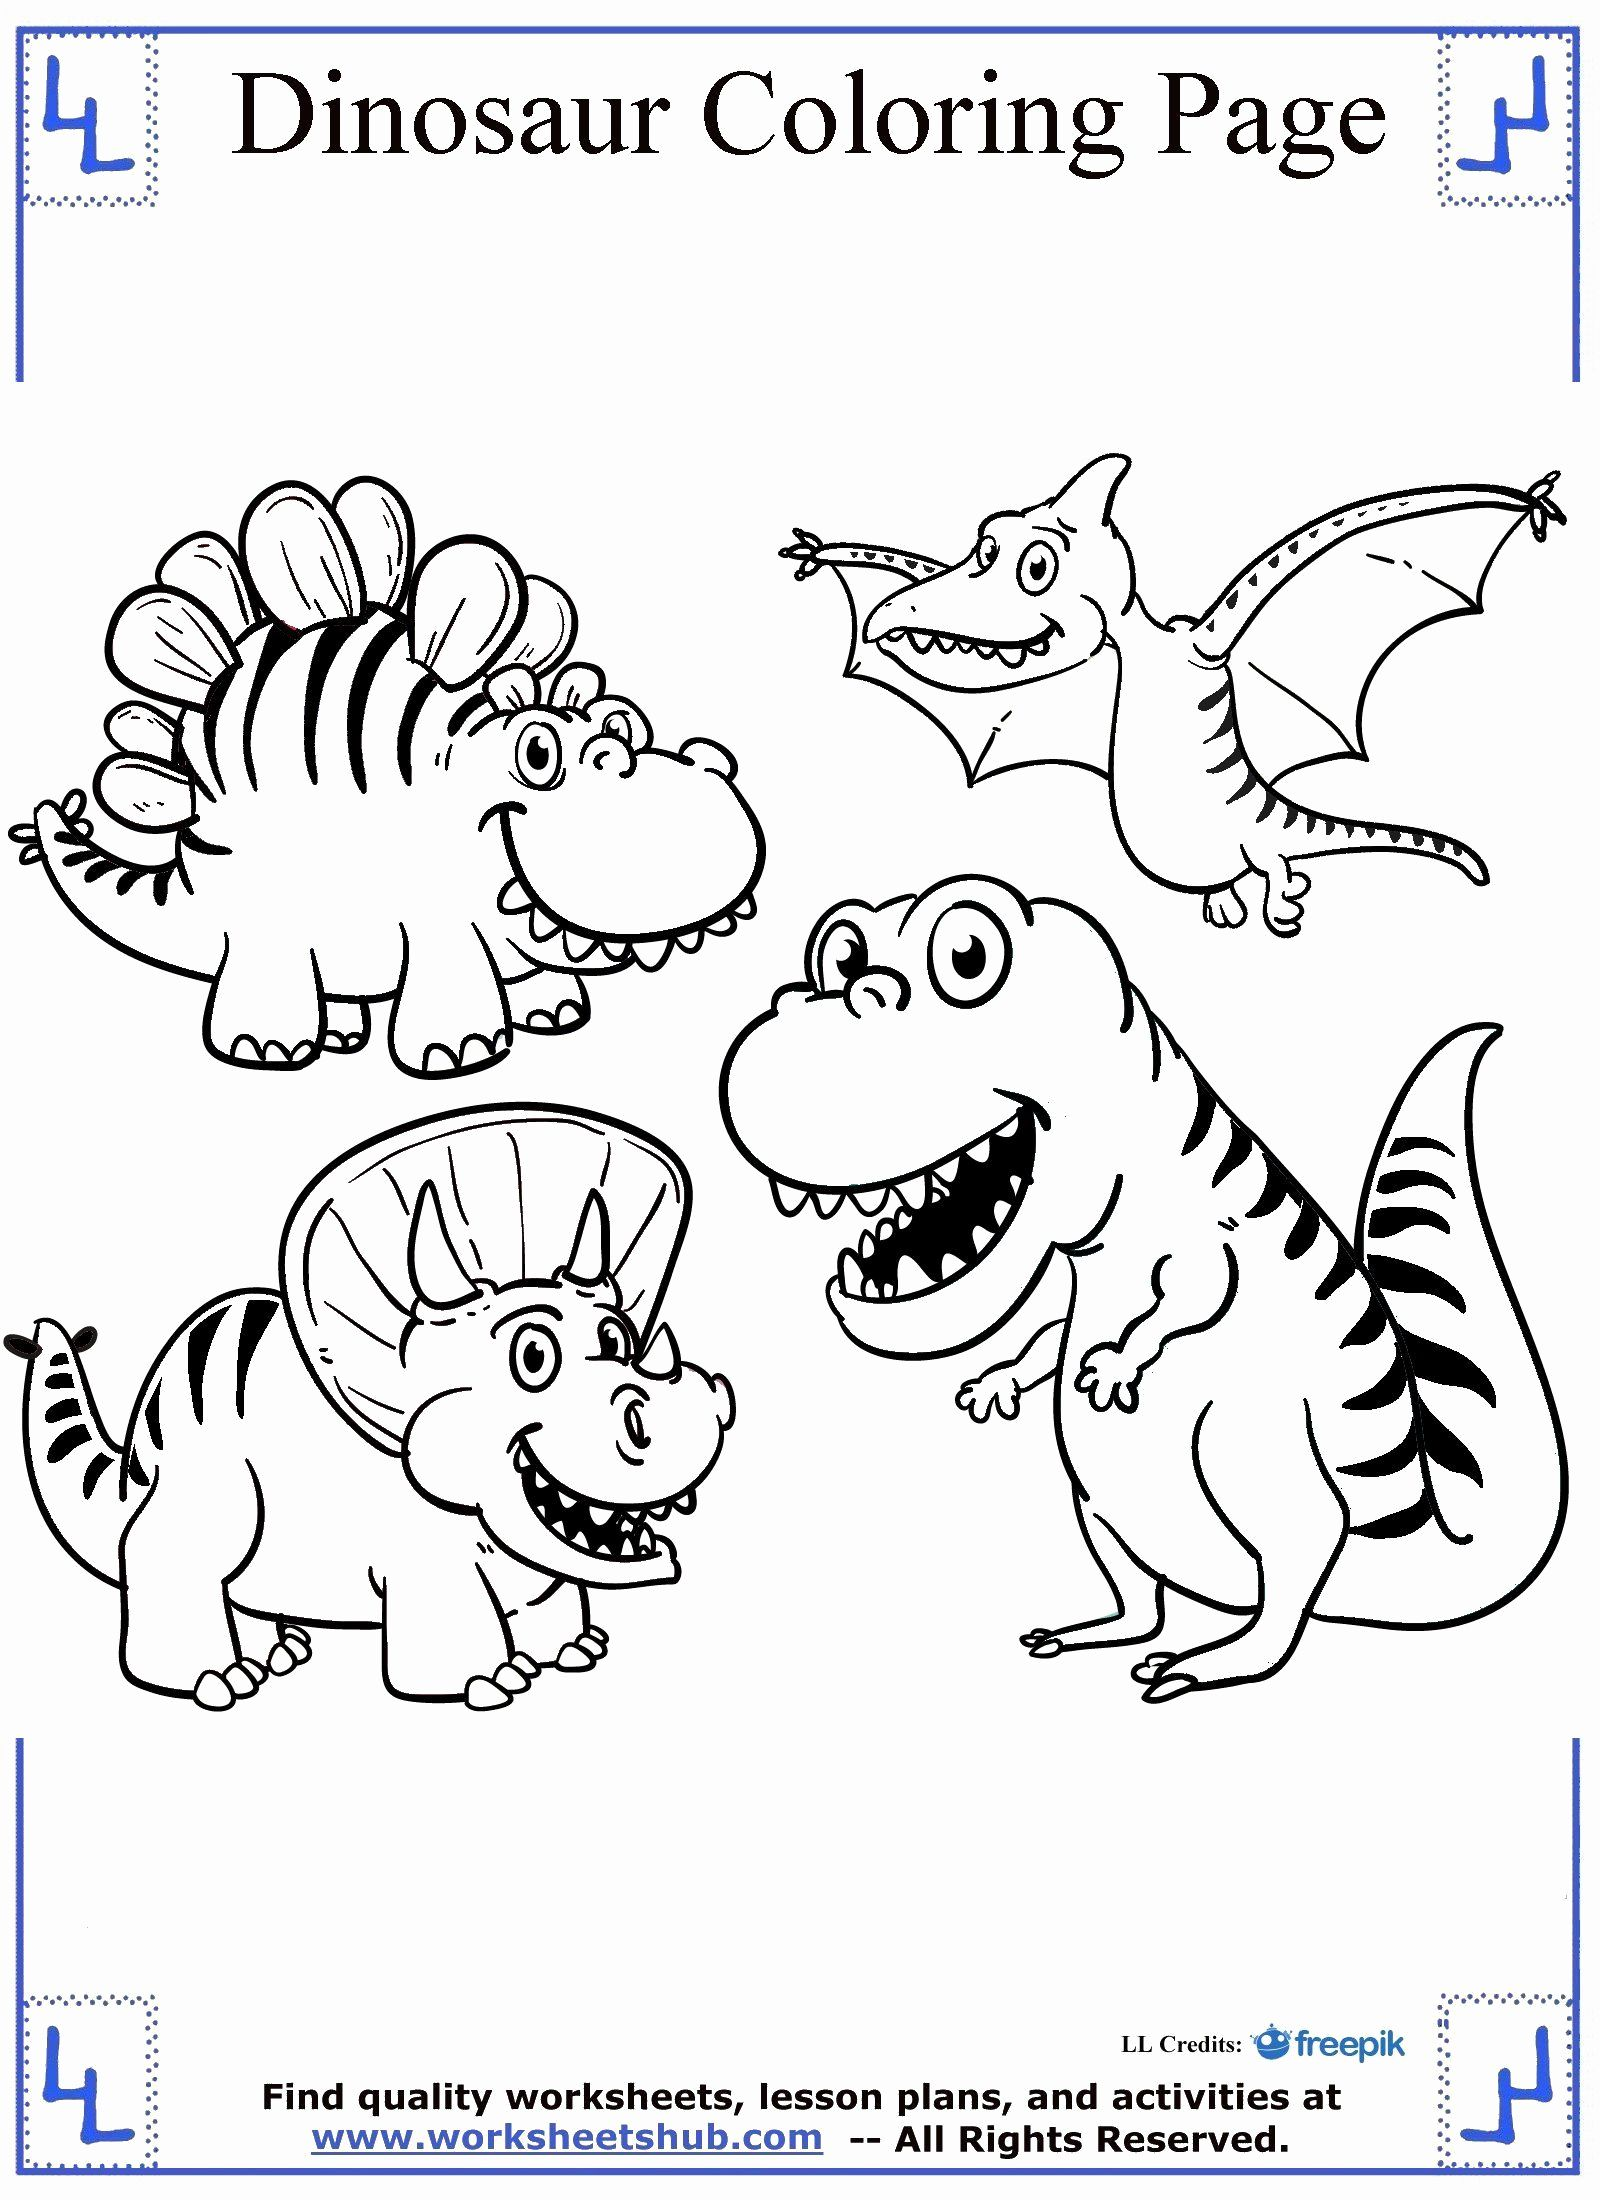 Cartoon Dinosaur Coloring Pages New Coloring Pages Dinosaurs Coloring Dinosaur Book Sheets Dinosaur Coloring Pages Dinosaur Coloring Coloring Books